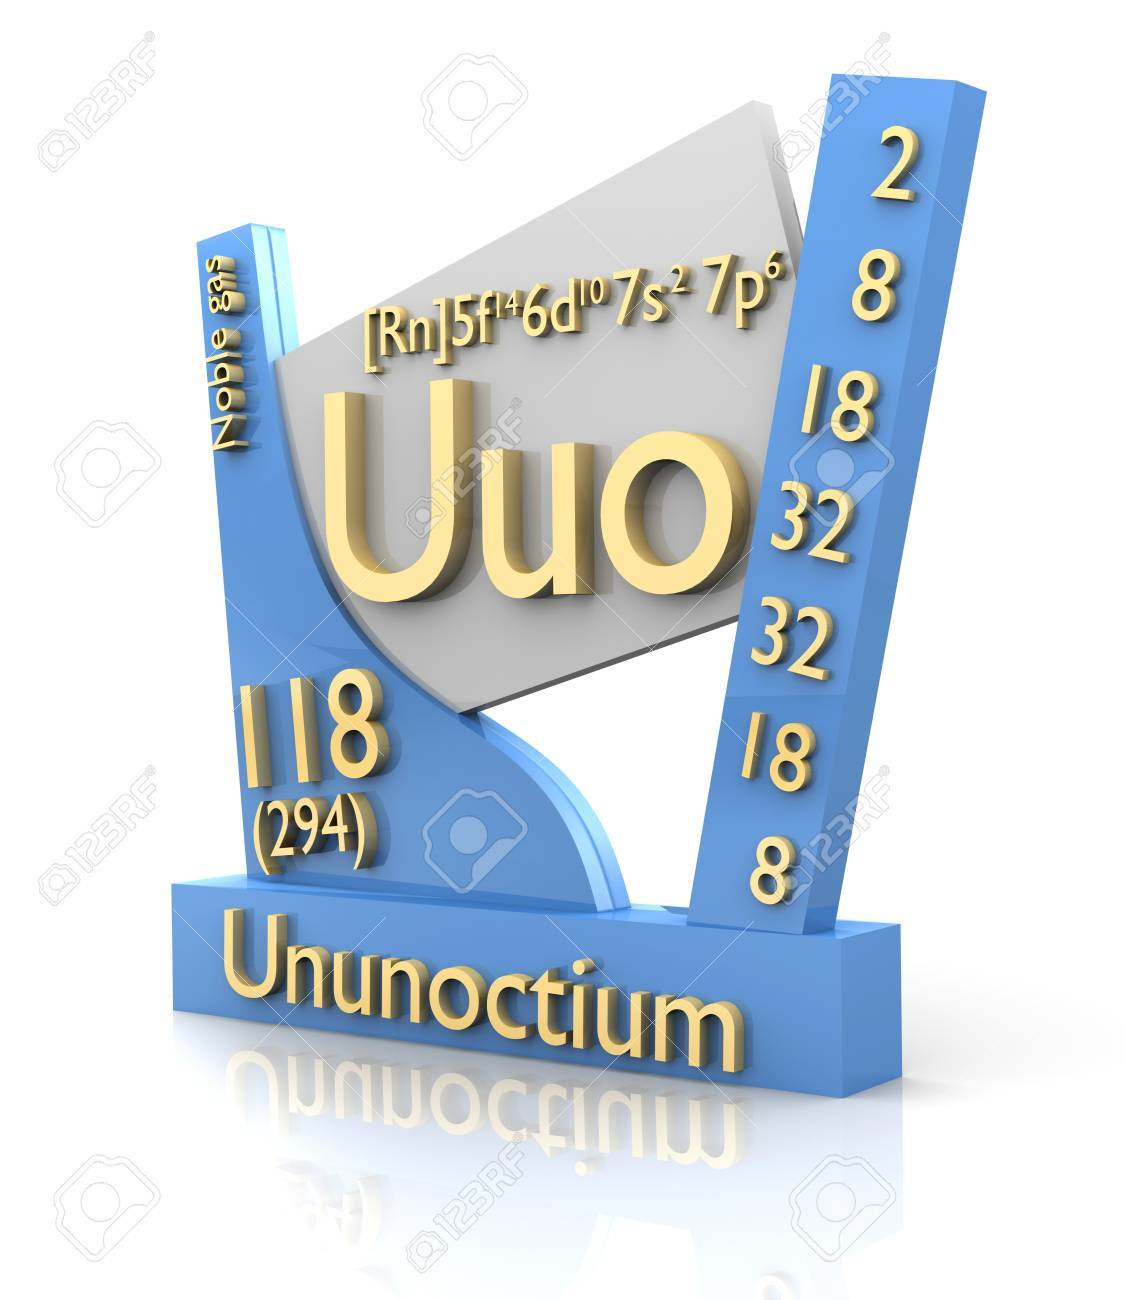 Ununoctium form periodic table of elements 3d made stock photo stock photo ununoctium form periodic table of elements 3d made urtaz Images